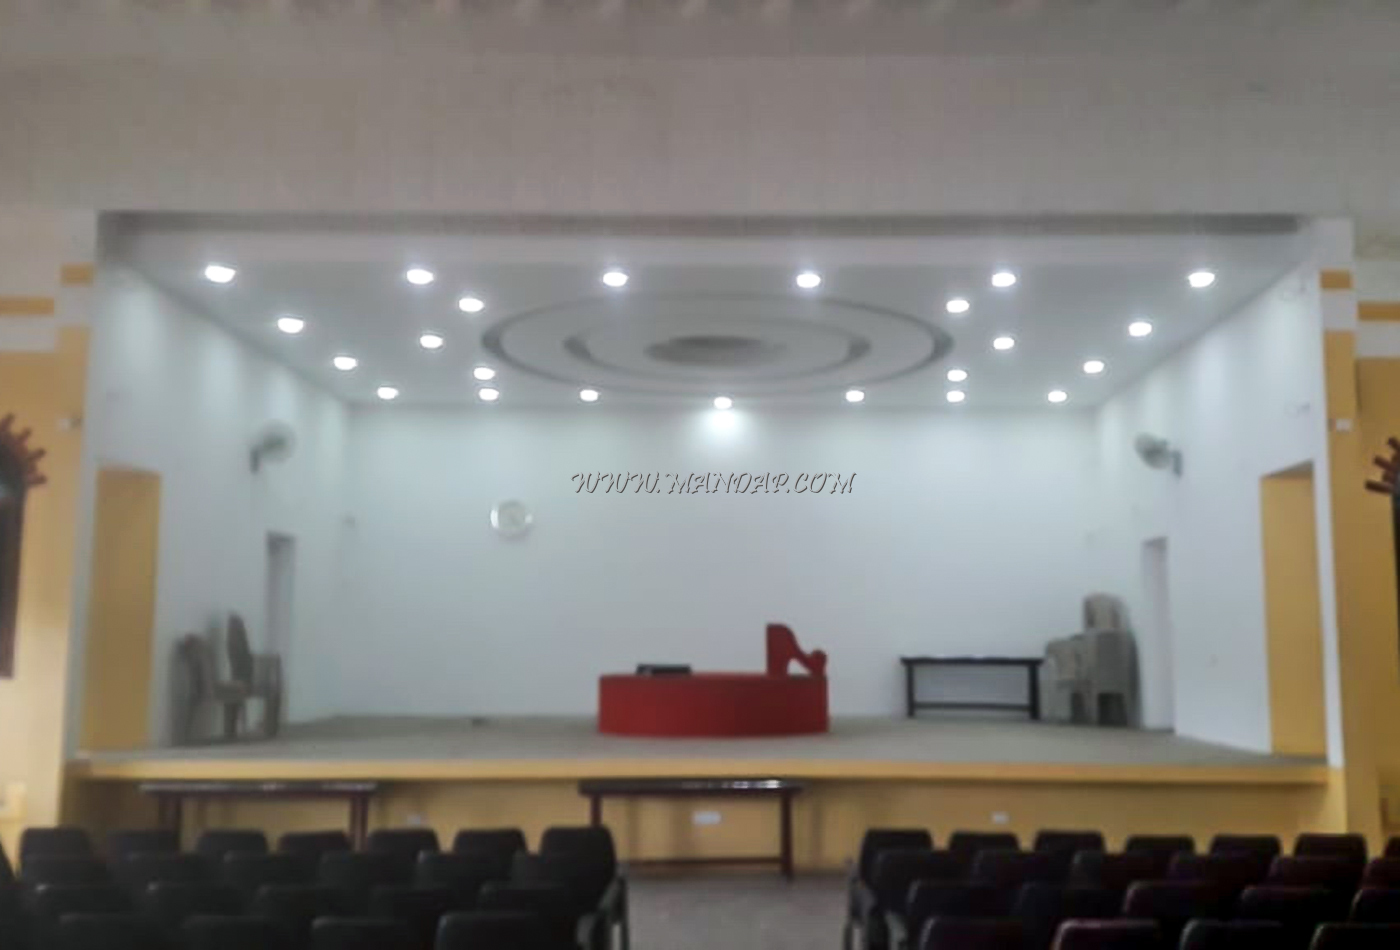 Find the availability of the Dinon Auditorium in Kattakkada, Trivandrum and avail special offers